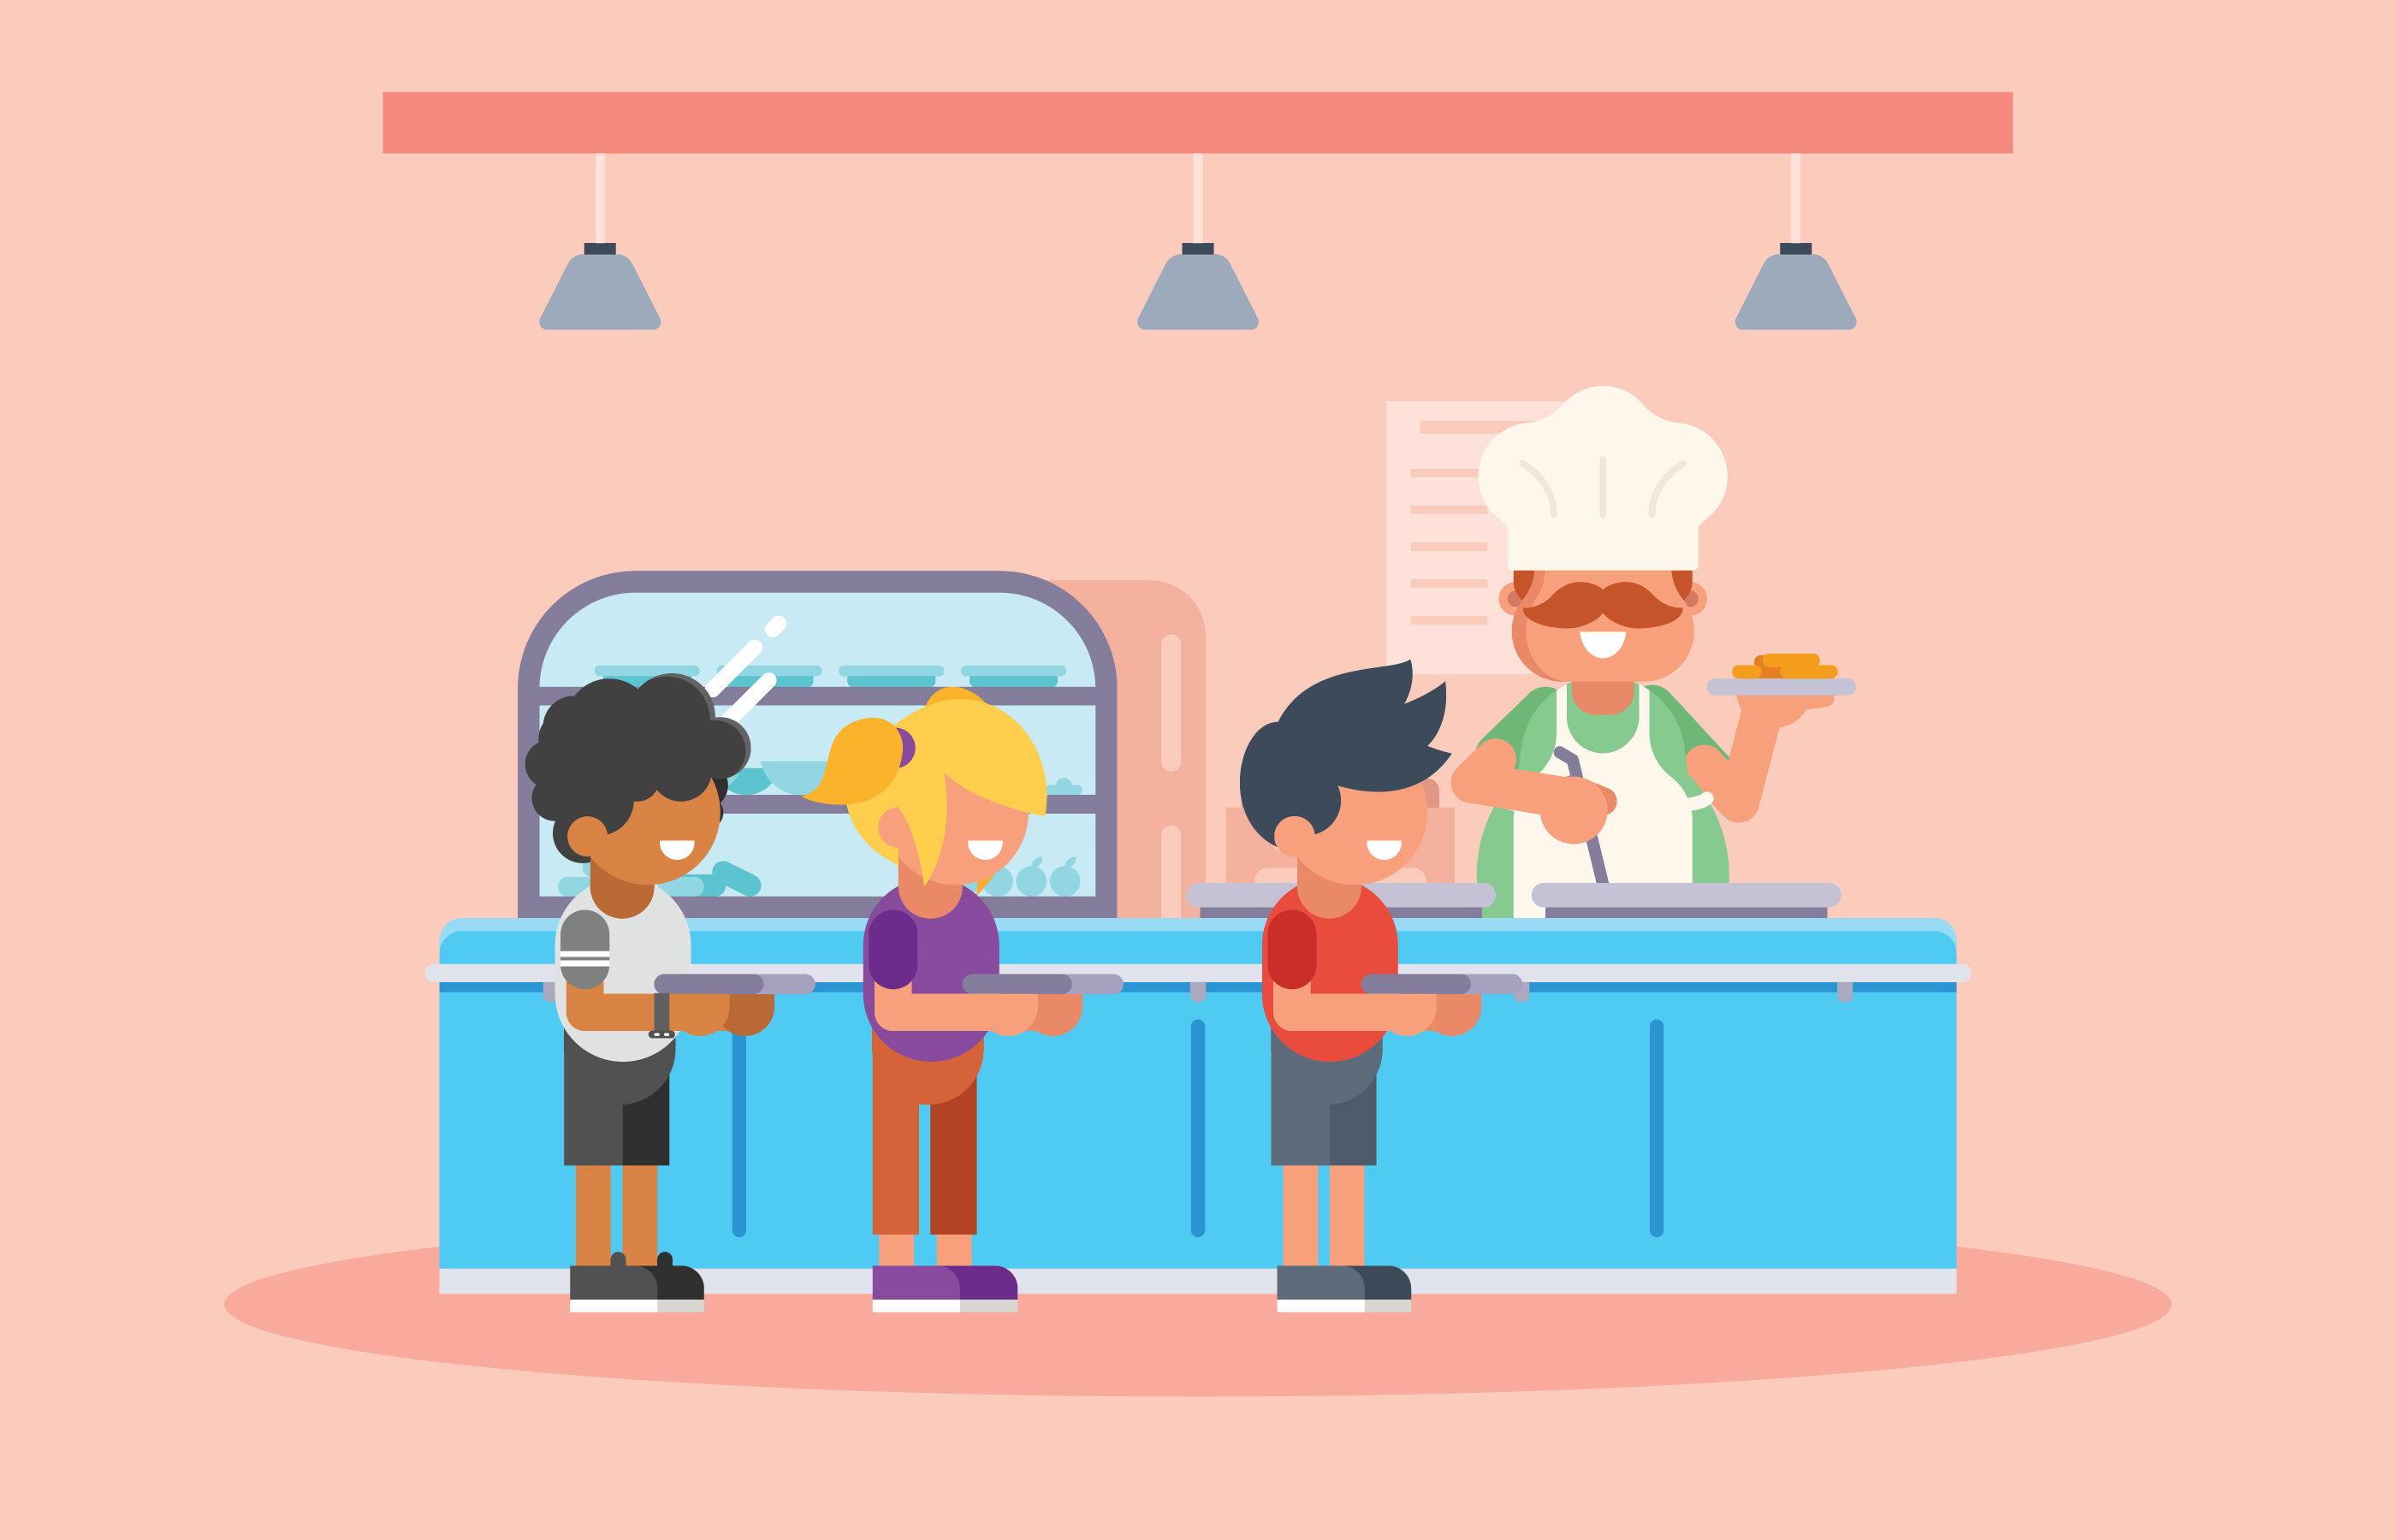 kids lining up in school canteen - download free vector art, stock